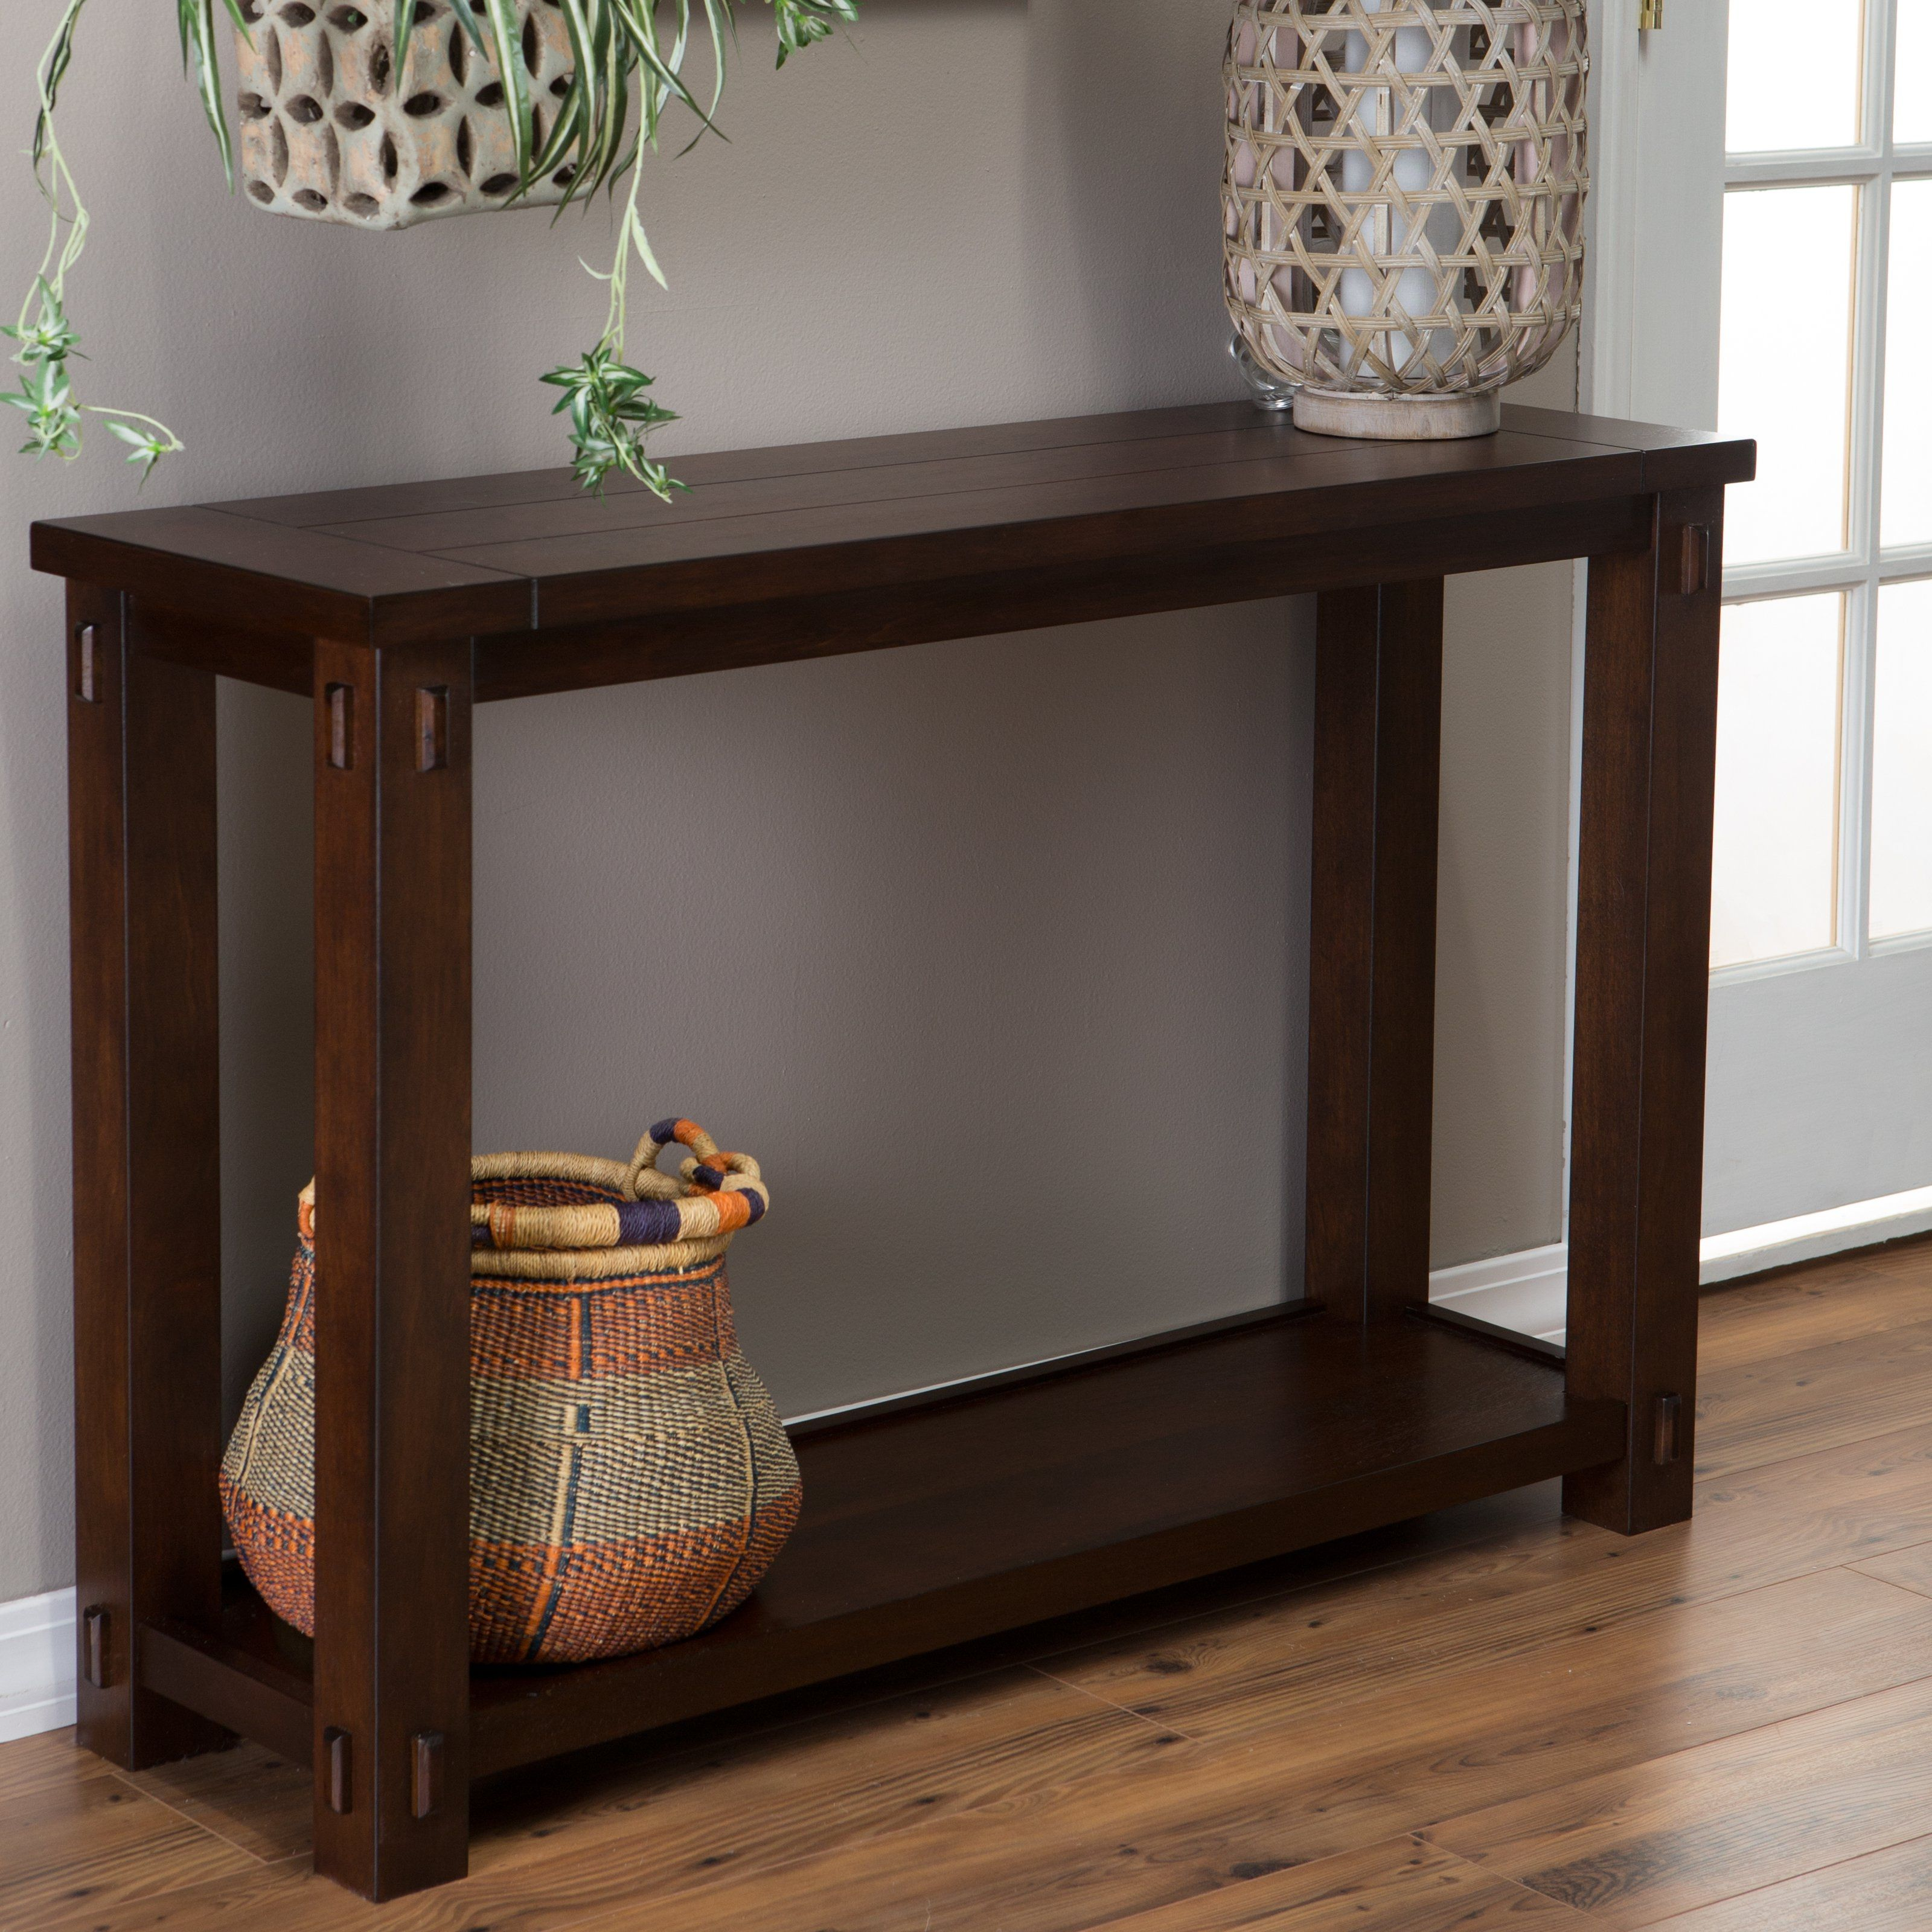 36 Console Table With Storage